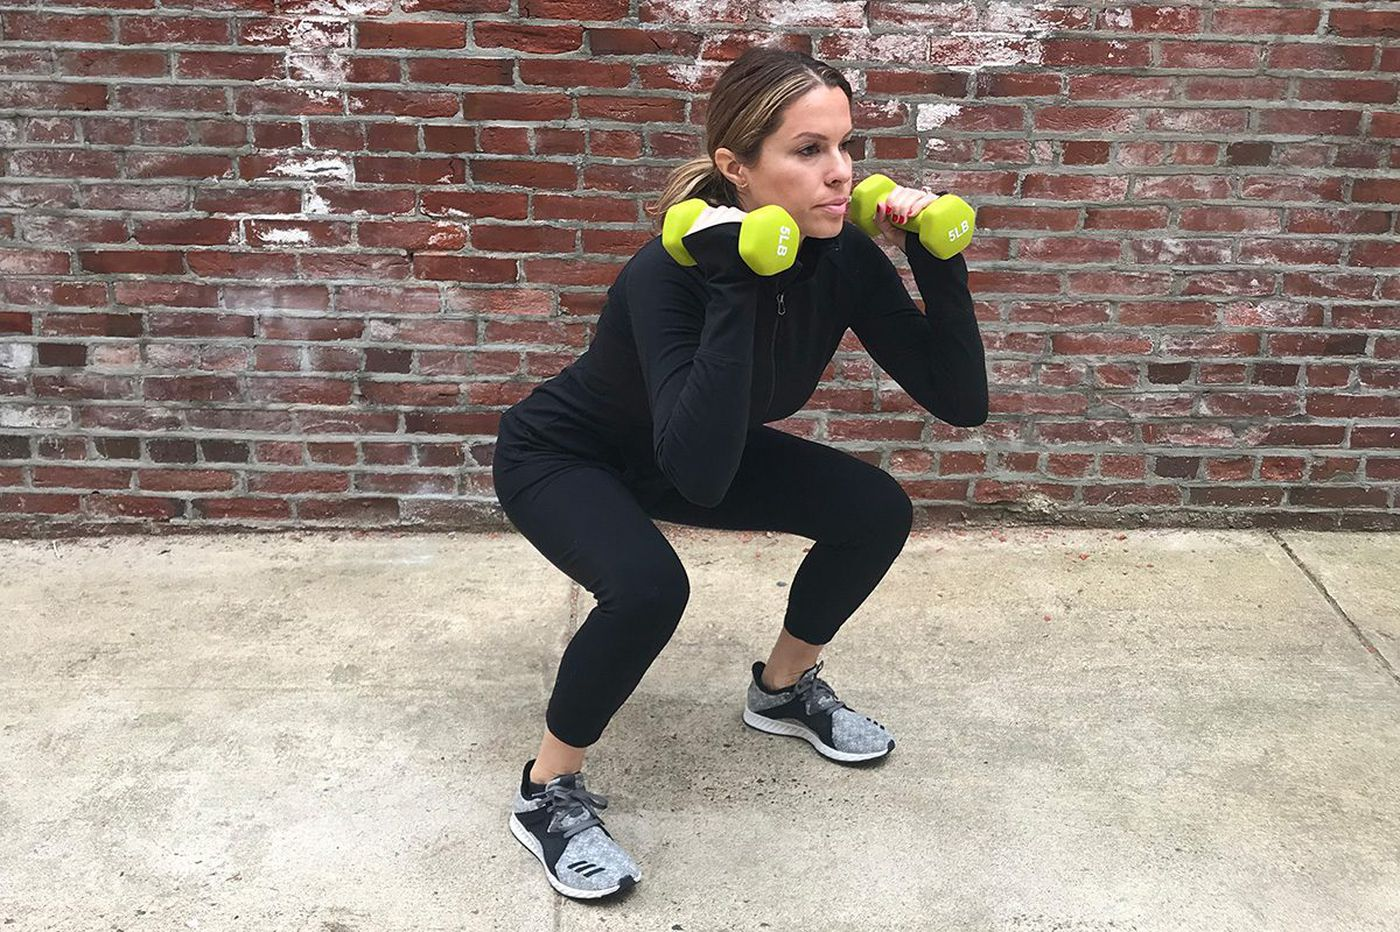 A beginner's guide to safely picking the right weights for strength training